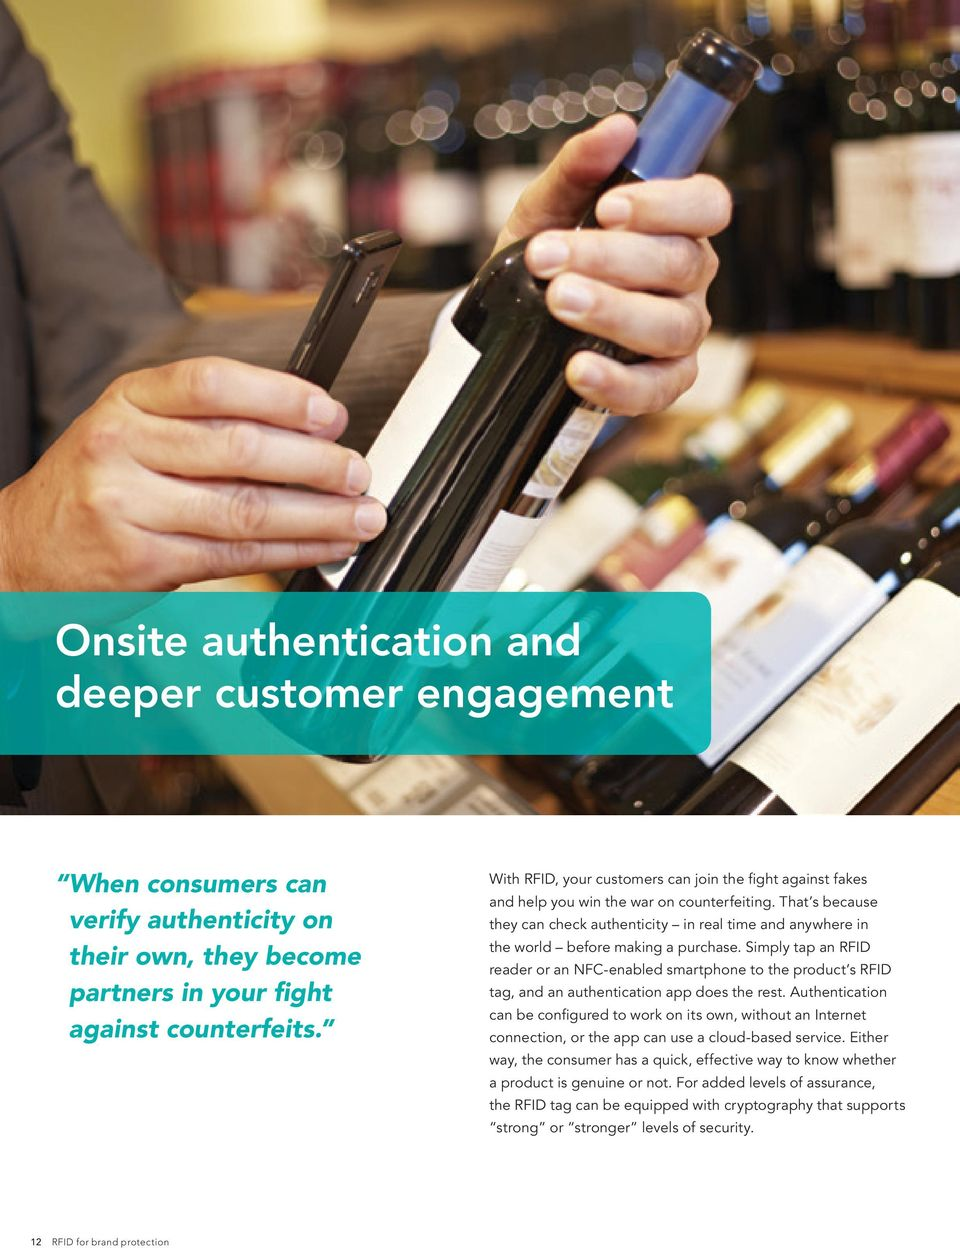 That s because they can check authenticity in real time and anywhere in the world before making a purchase.